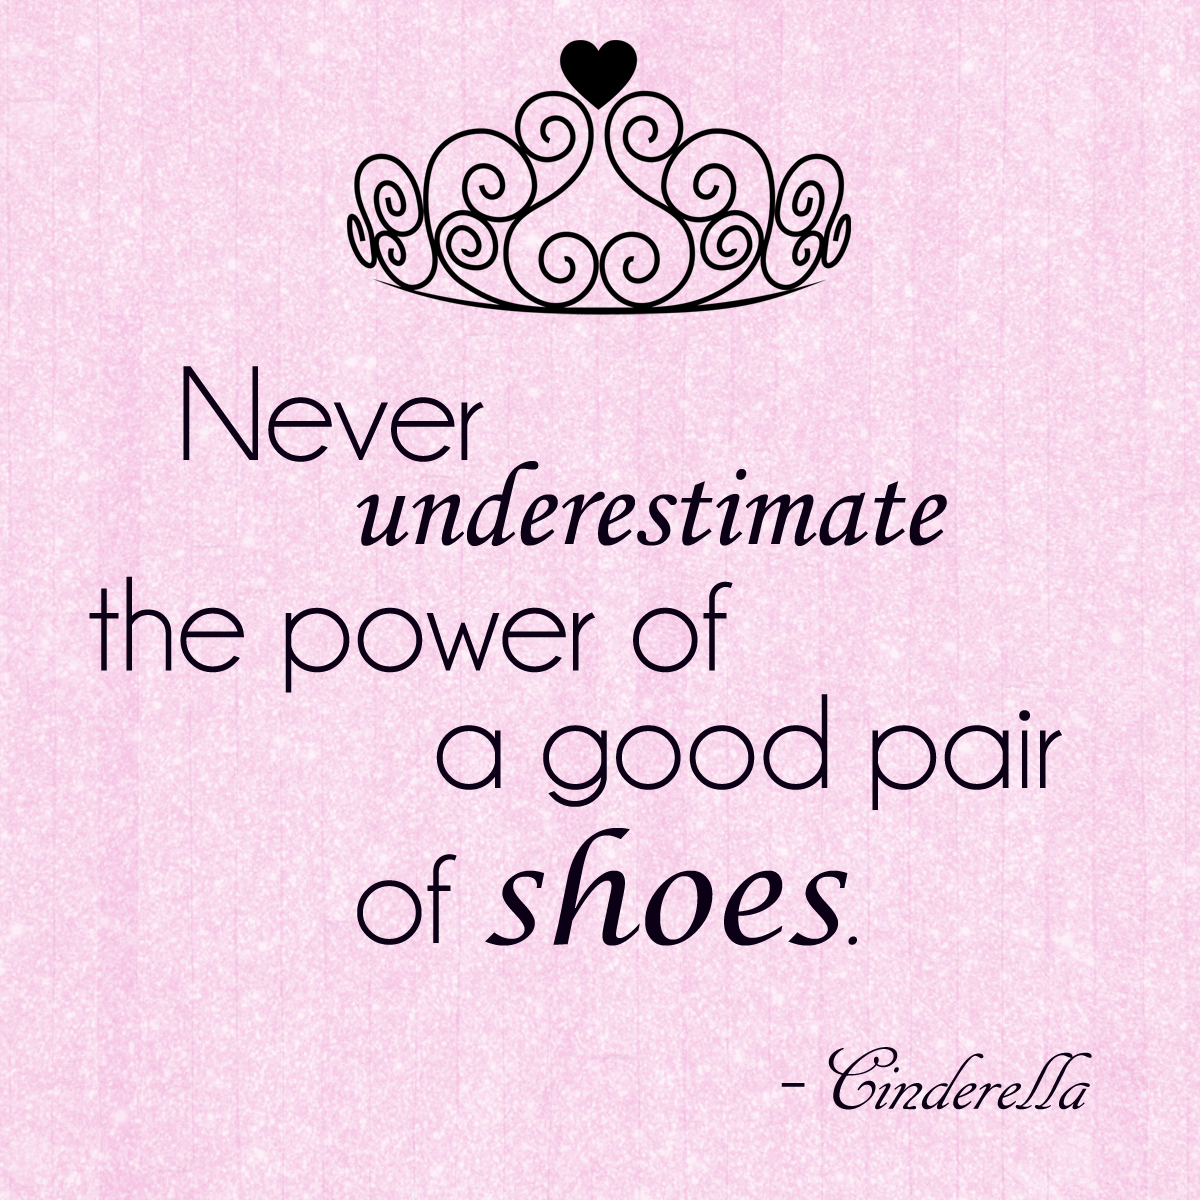 Cinderella knows about shoes.